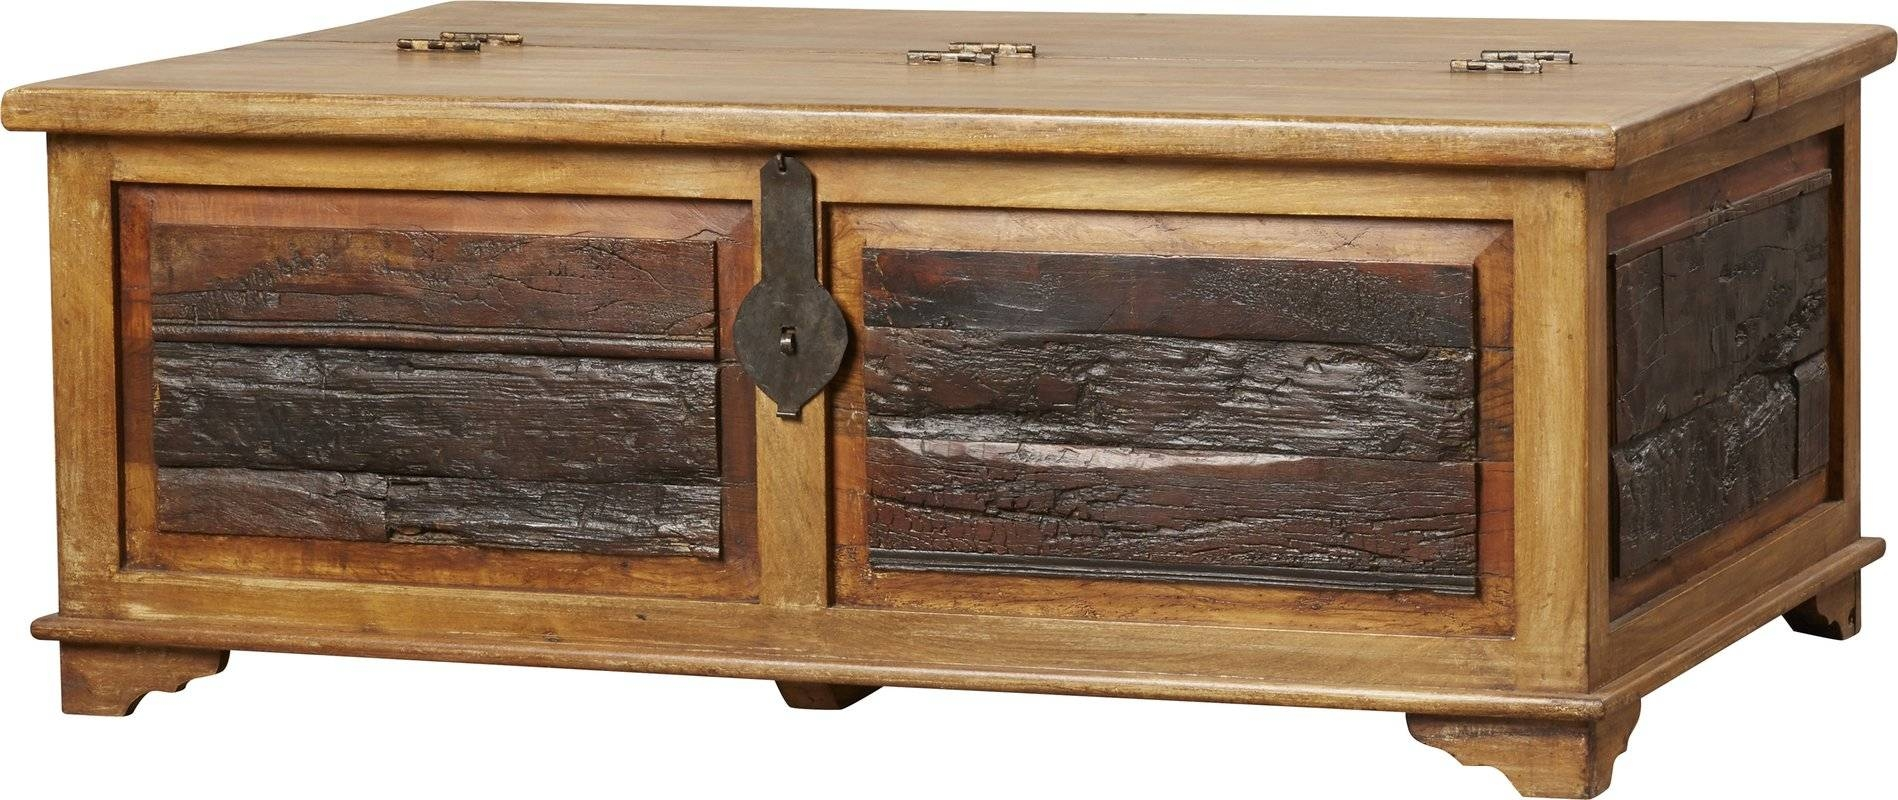 William Sheppee Kerala Blanket Box / Trunk Coffee Table & Reviews in Blanket Box Coffee Tables (Image 29 of 30)